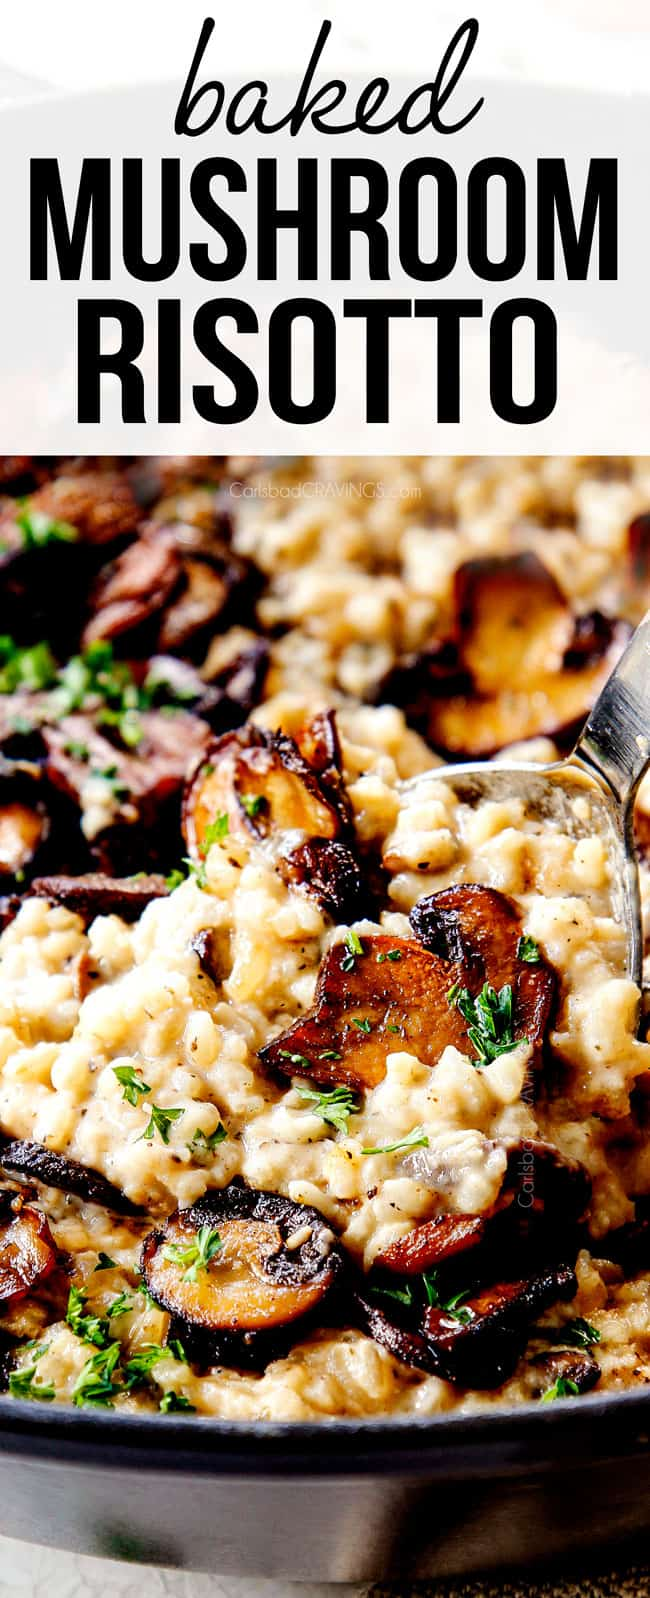 up close scooping mushroom risotto to show how creamy it is